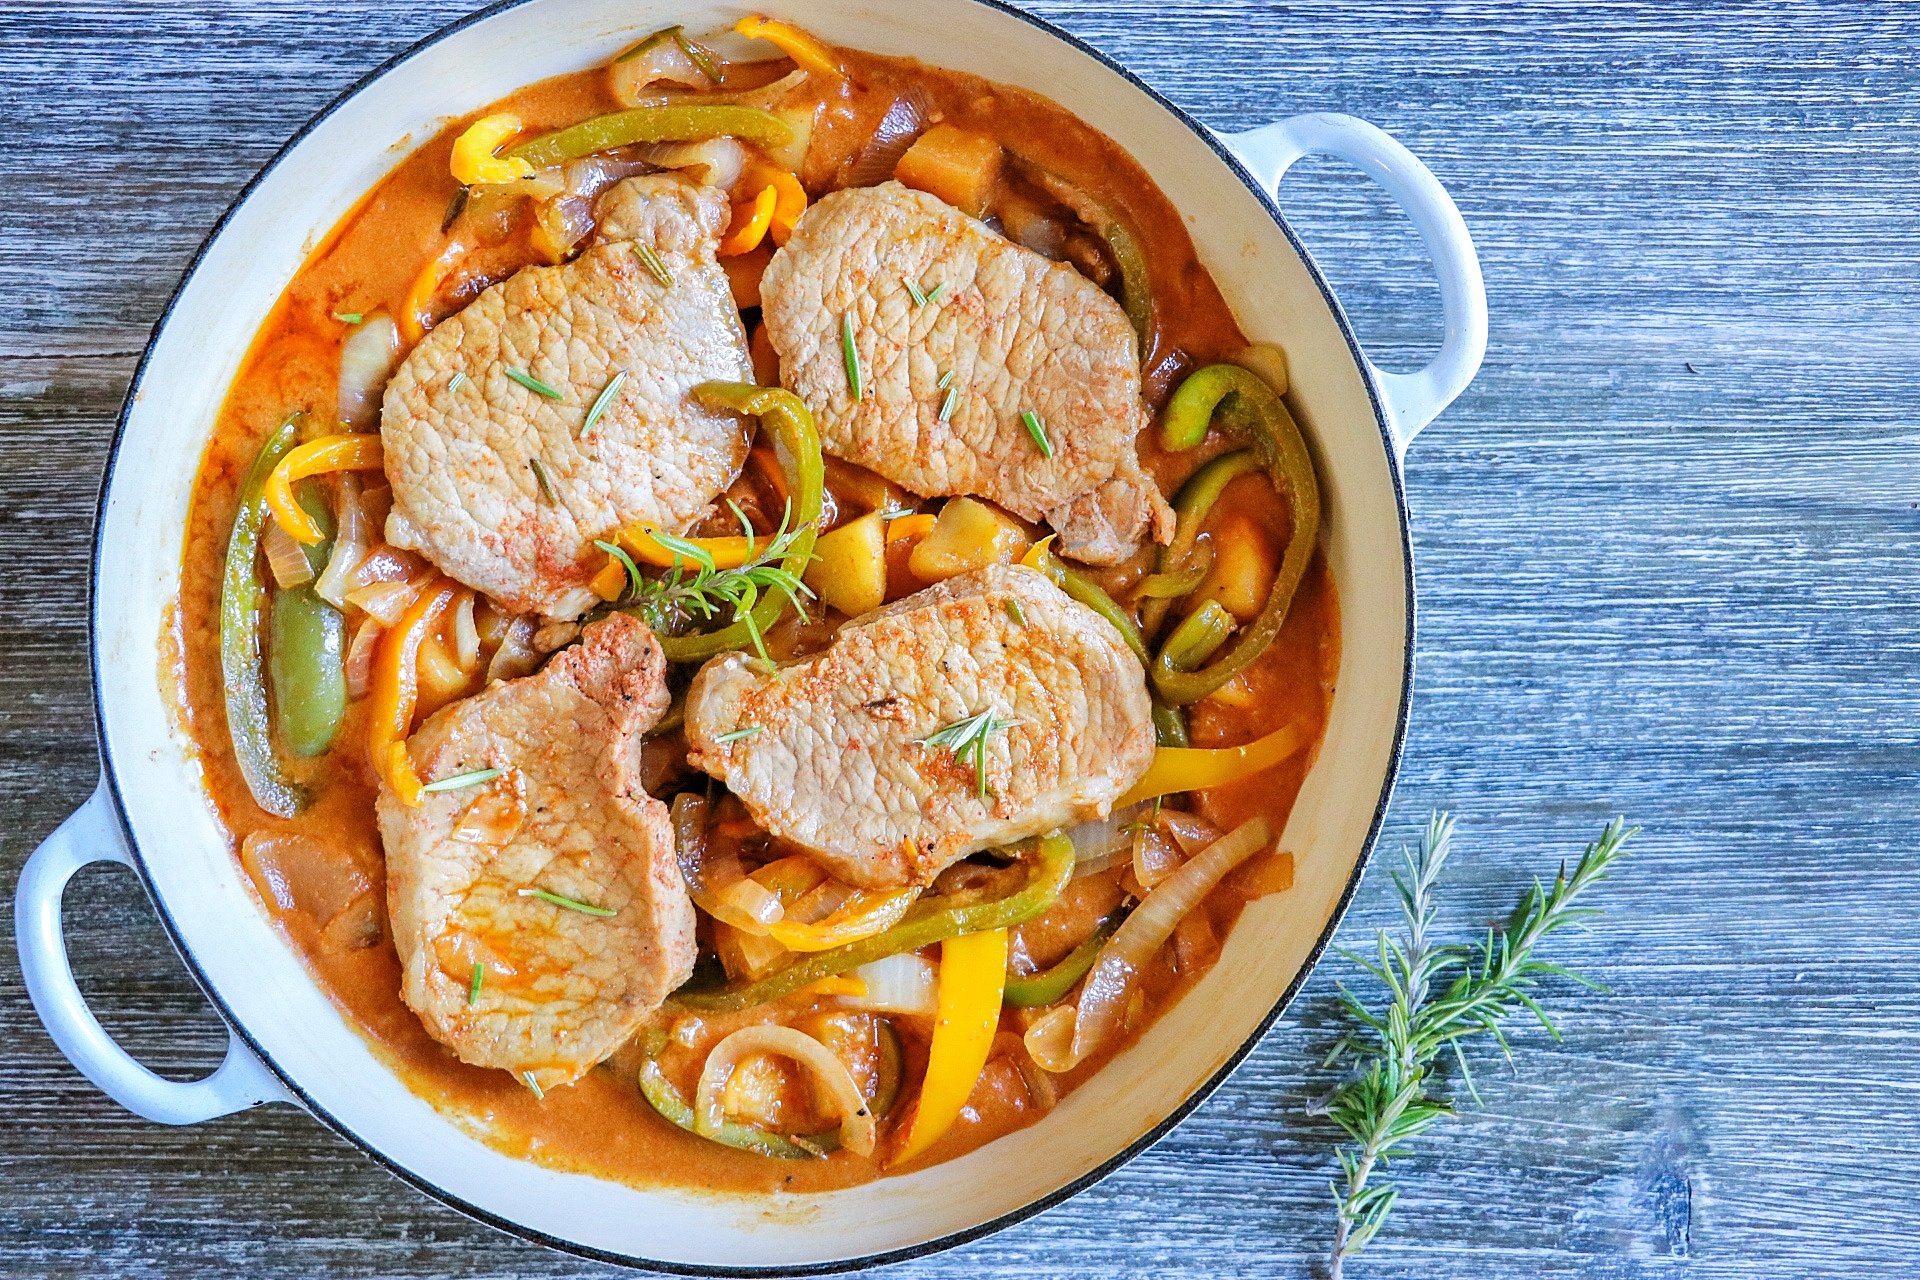 Pan-Fried Pork Chops with Apple and Pepper Gravy